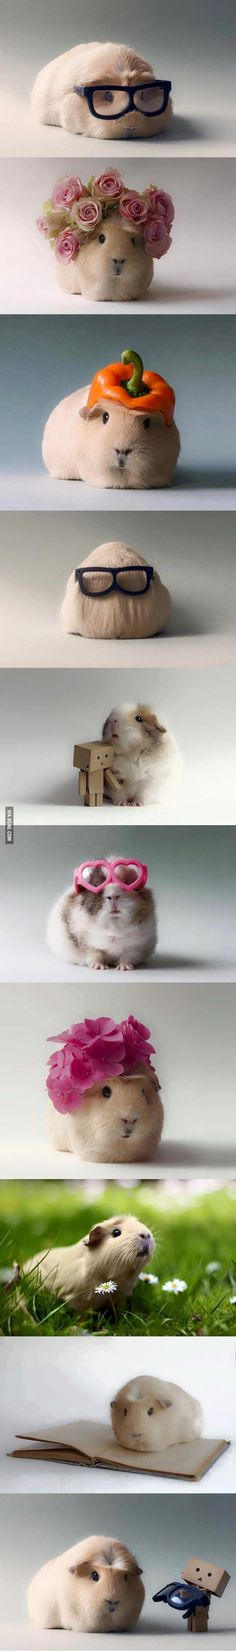 Having a bad day? These floofs will help you cheer up! - 9GAG